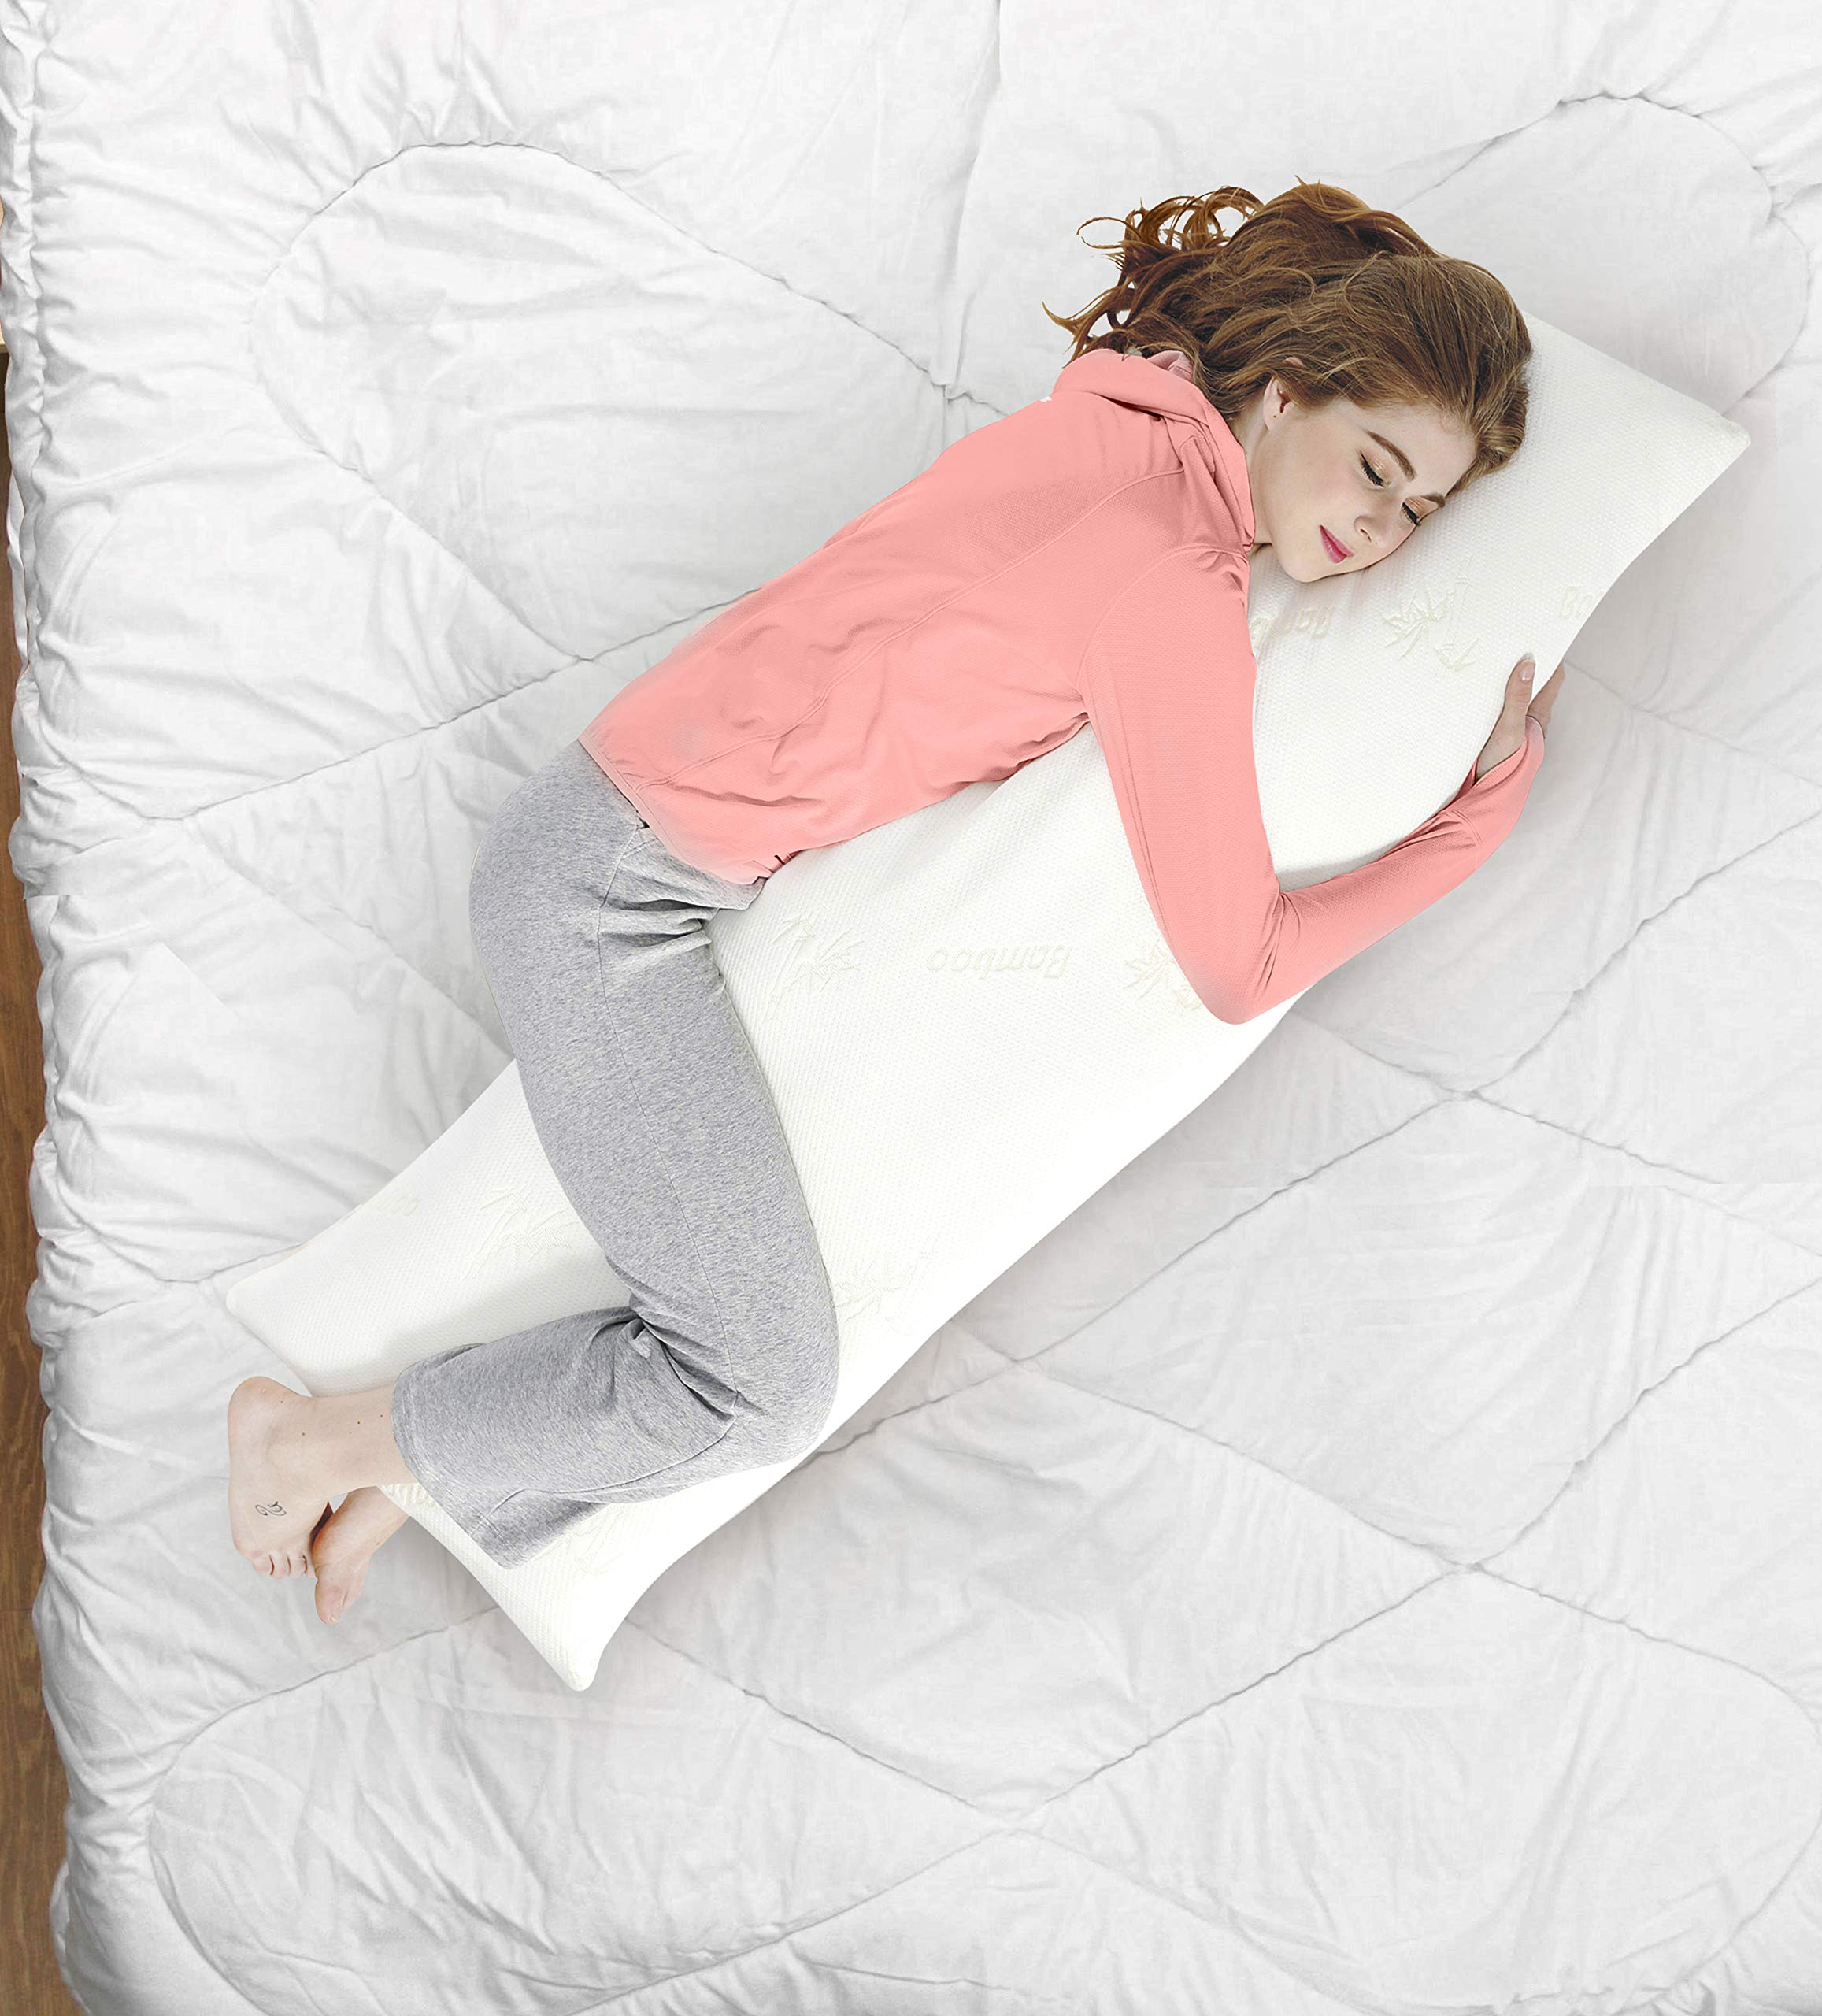 AmazingDreams Full Body Pillow - Side Sleeper Pillow and Pregnancy Pillow with Washable Bamboo Cover by Amazing Dreams (Image #5)